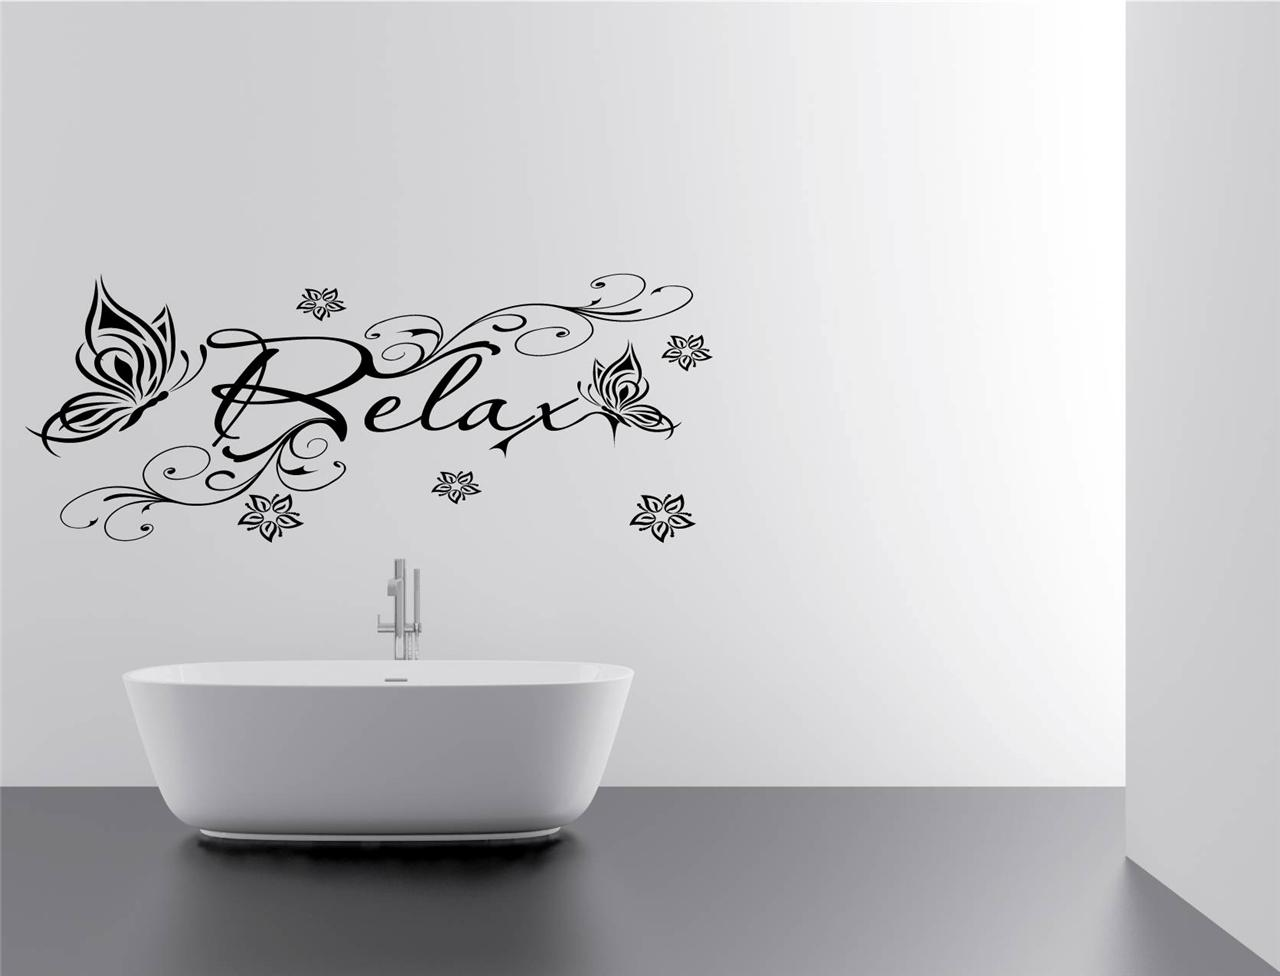 Details about floral relax bathroom vinyl wall art decal sticker f13